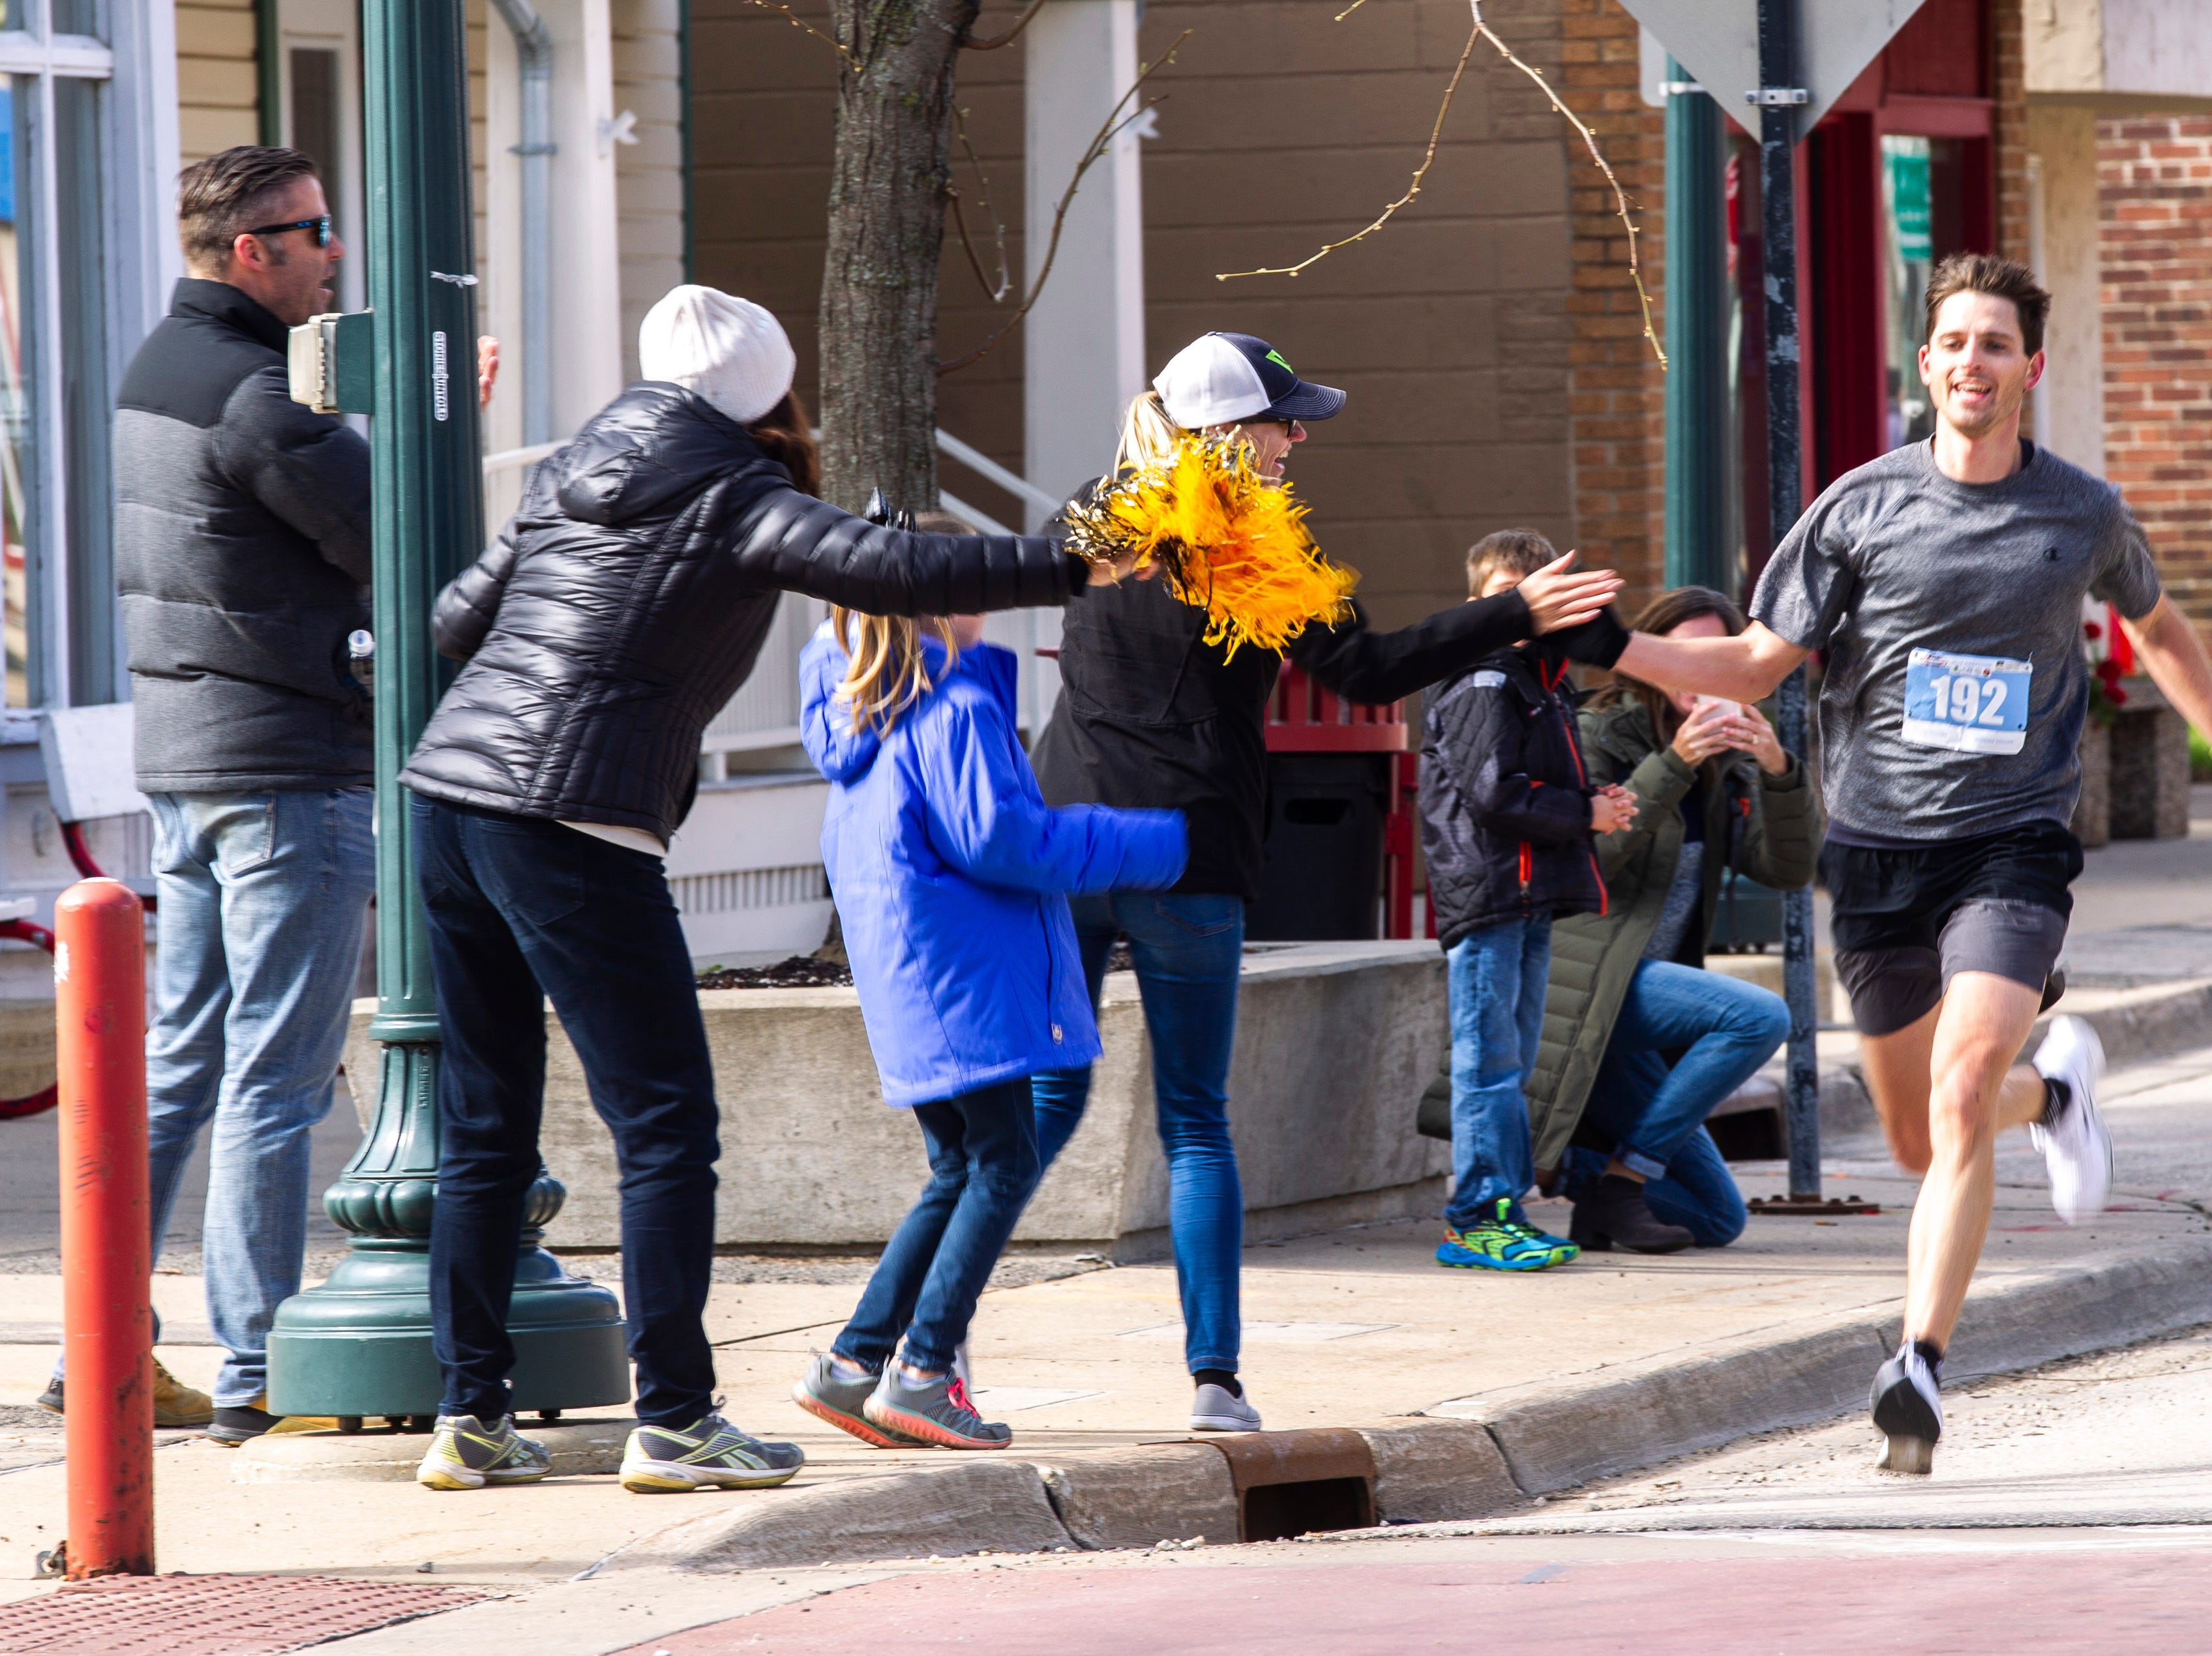 Joshua Lawrence gets a high-five from supporters while nearing the finish line during the second annual Run CRANDIC marathon, Sunday, April 28, 2019, along 16th Avenue SE in Cedar Rapids, Iowa.